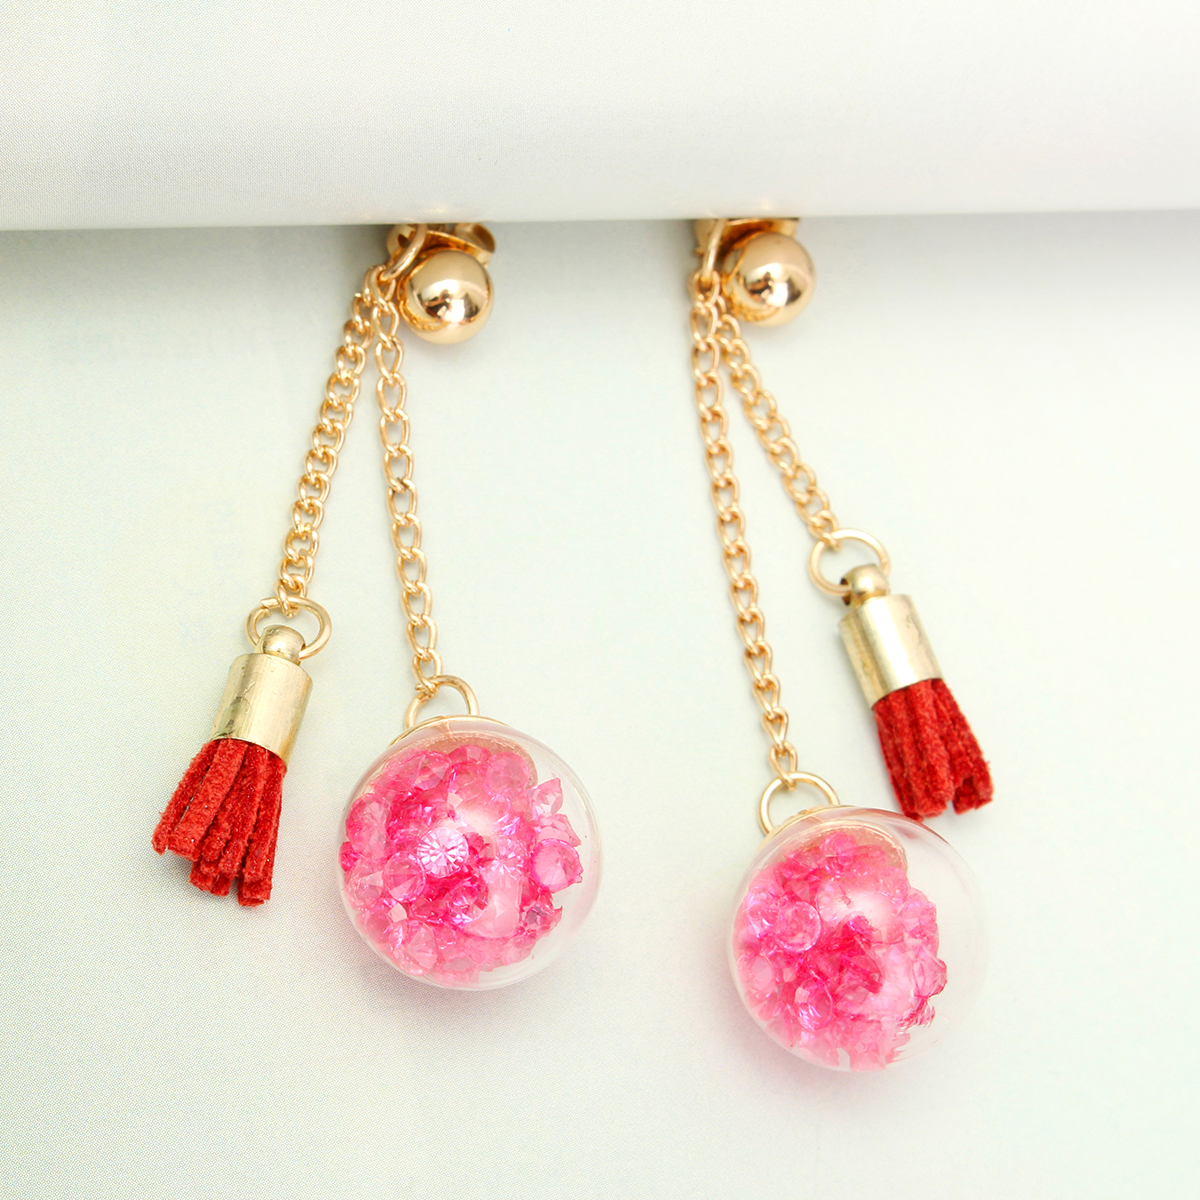 Tassel Wishing Glass Ball Crystal Leather Long Earrings Gift